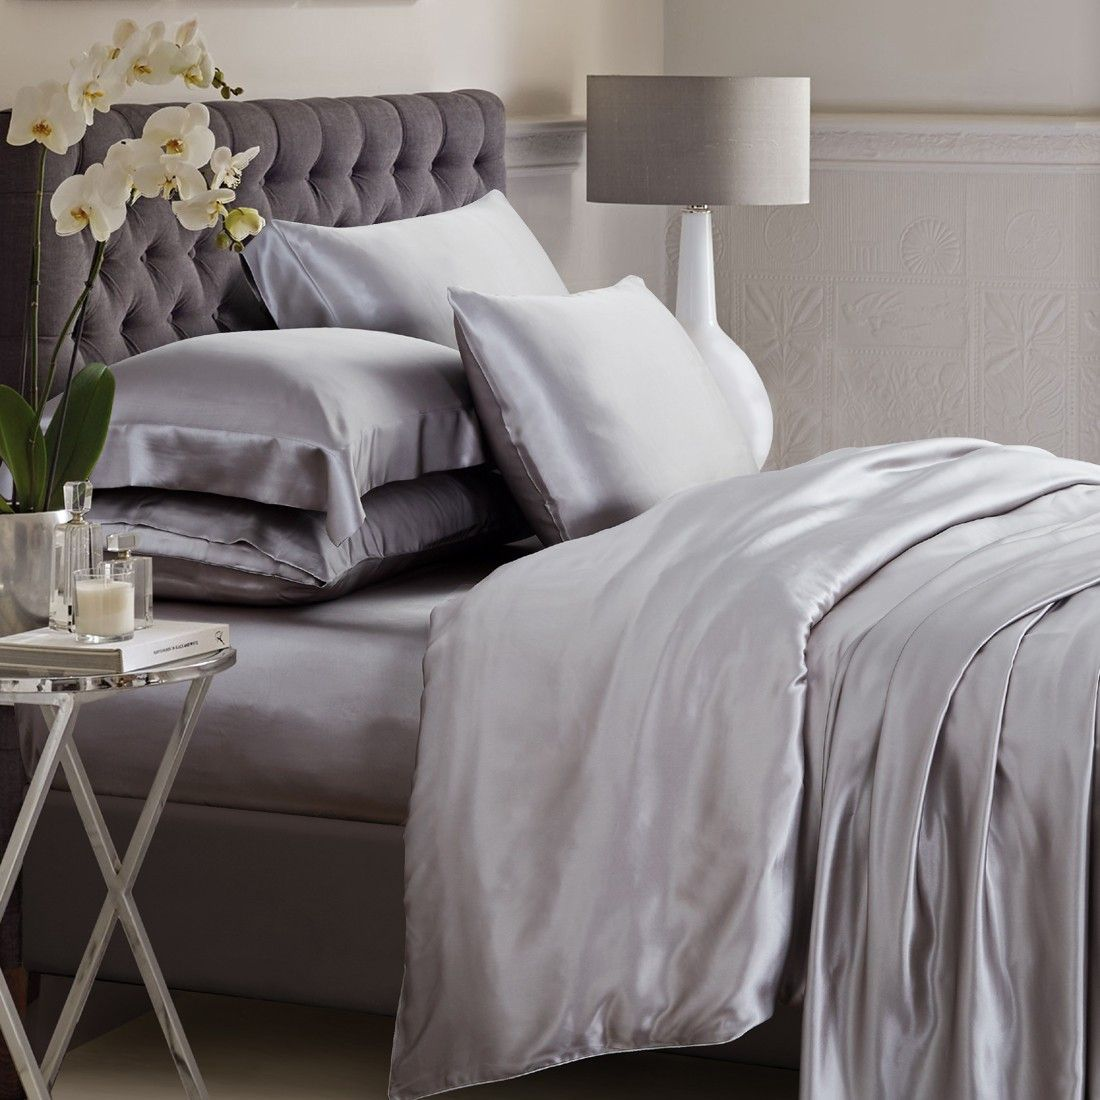 Ellesilk S Silver Silk Bed Linen Is Made From The Finest Seamless Mulberry Super Luxury And Comfortable